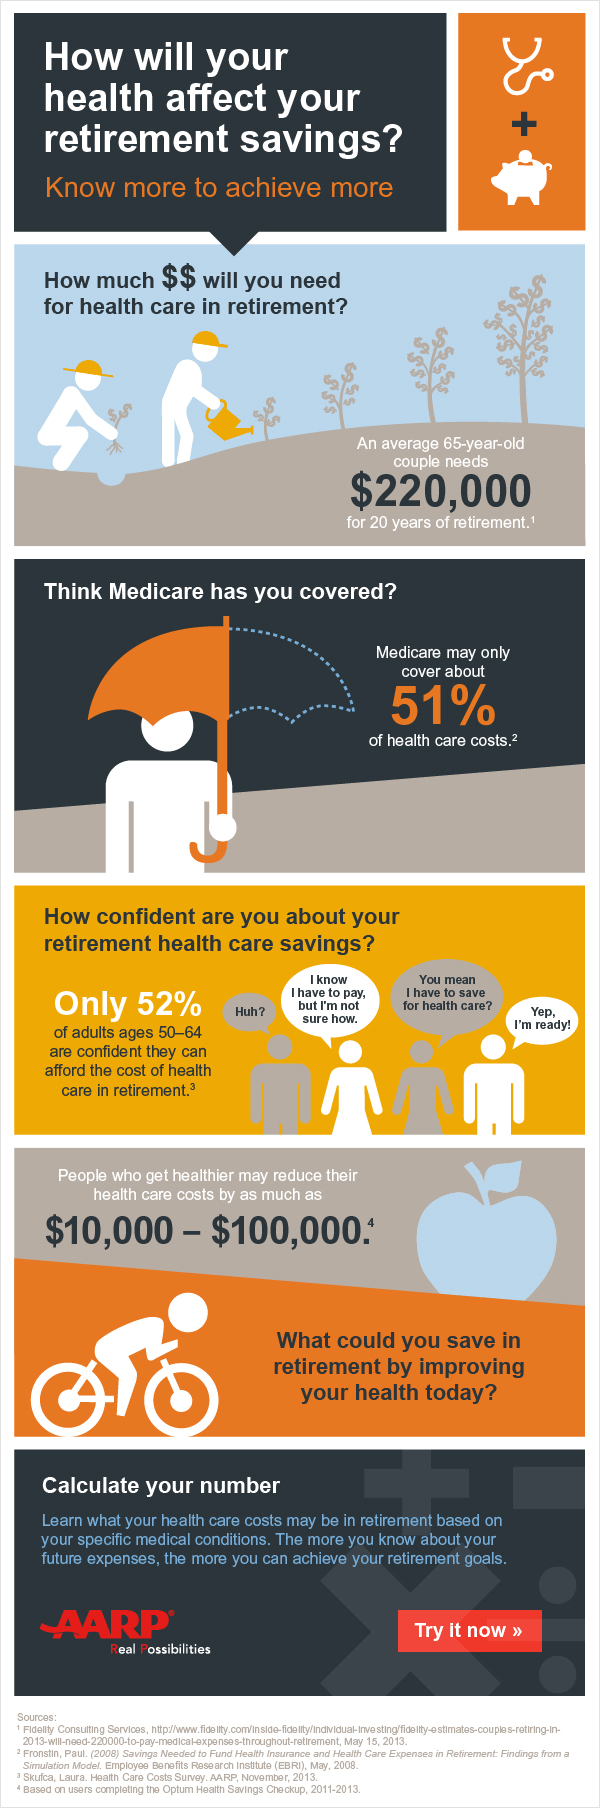 How will your health affect your retirement savings?